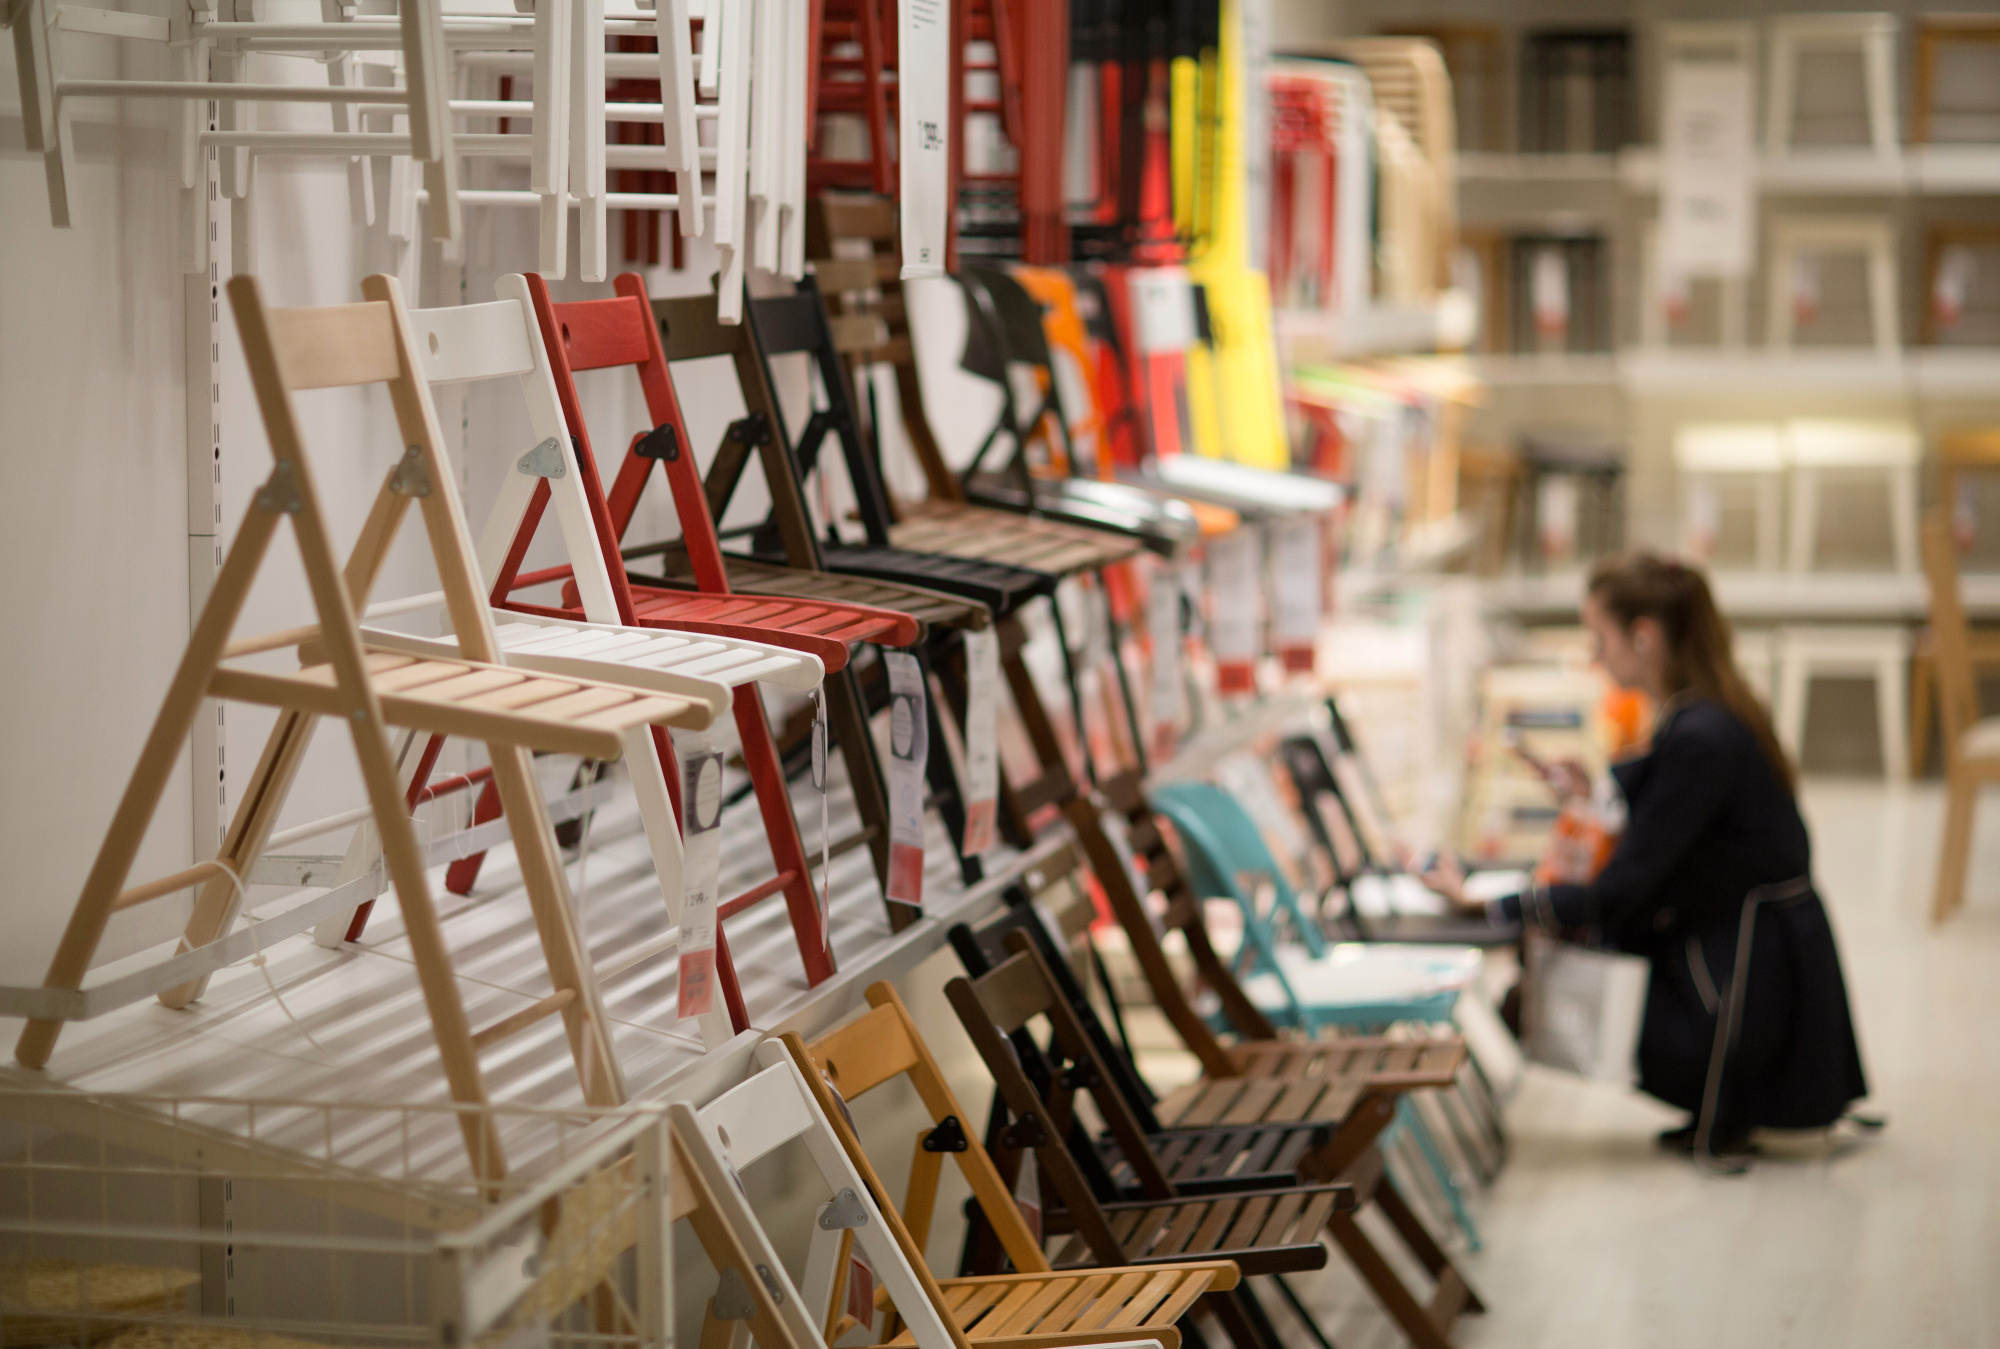 Ikea Counts Cost Of Brexit As Furniture Import Prices Soar Bloomberg